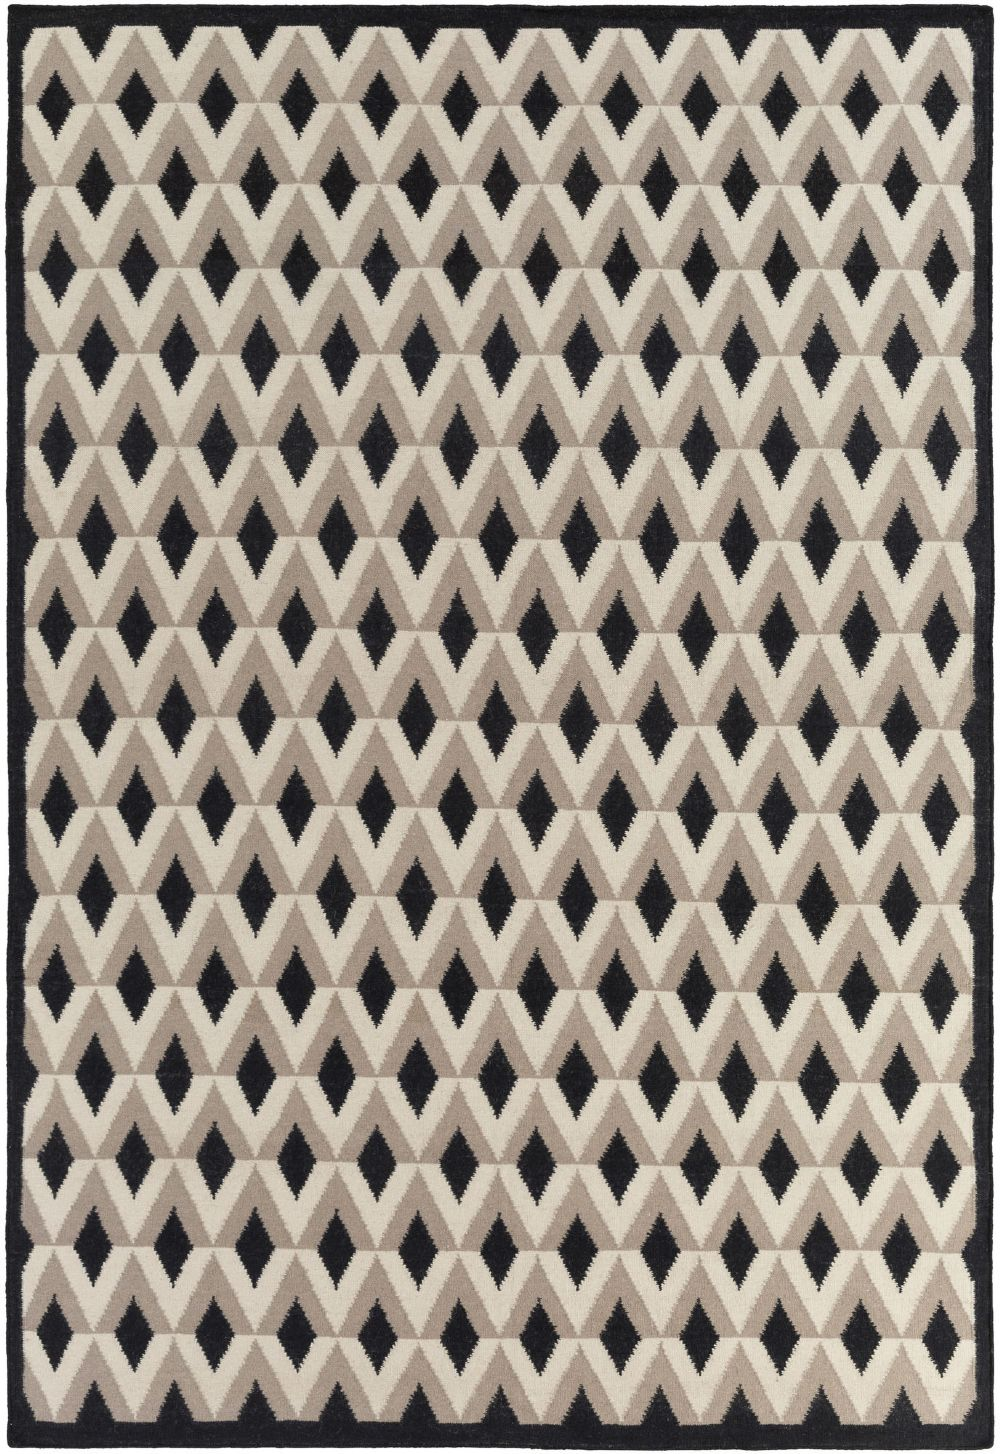 surya dwell d contemporary area rug collection